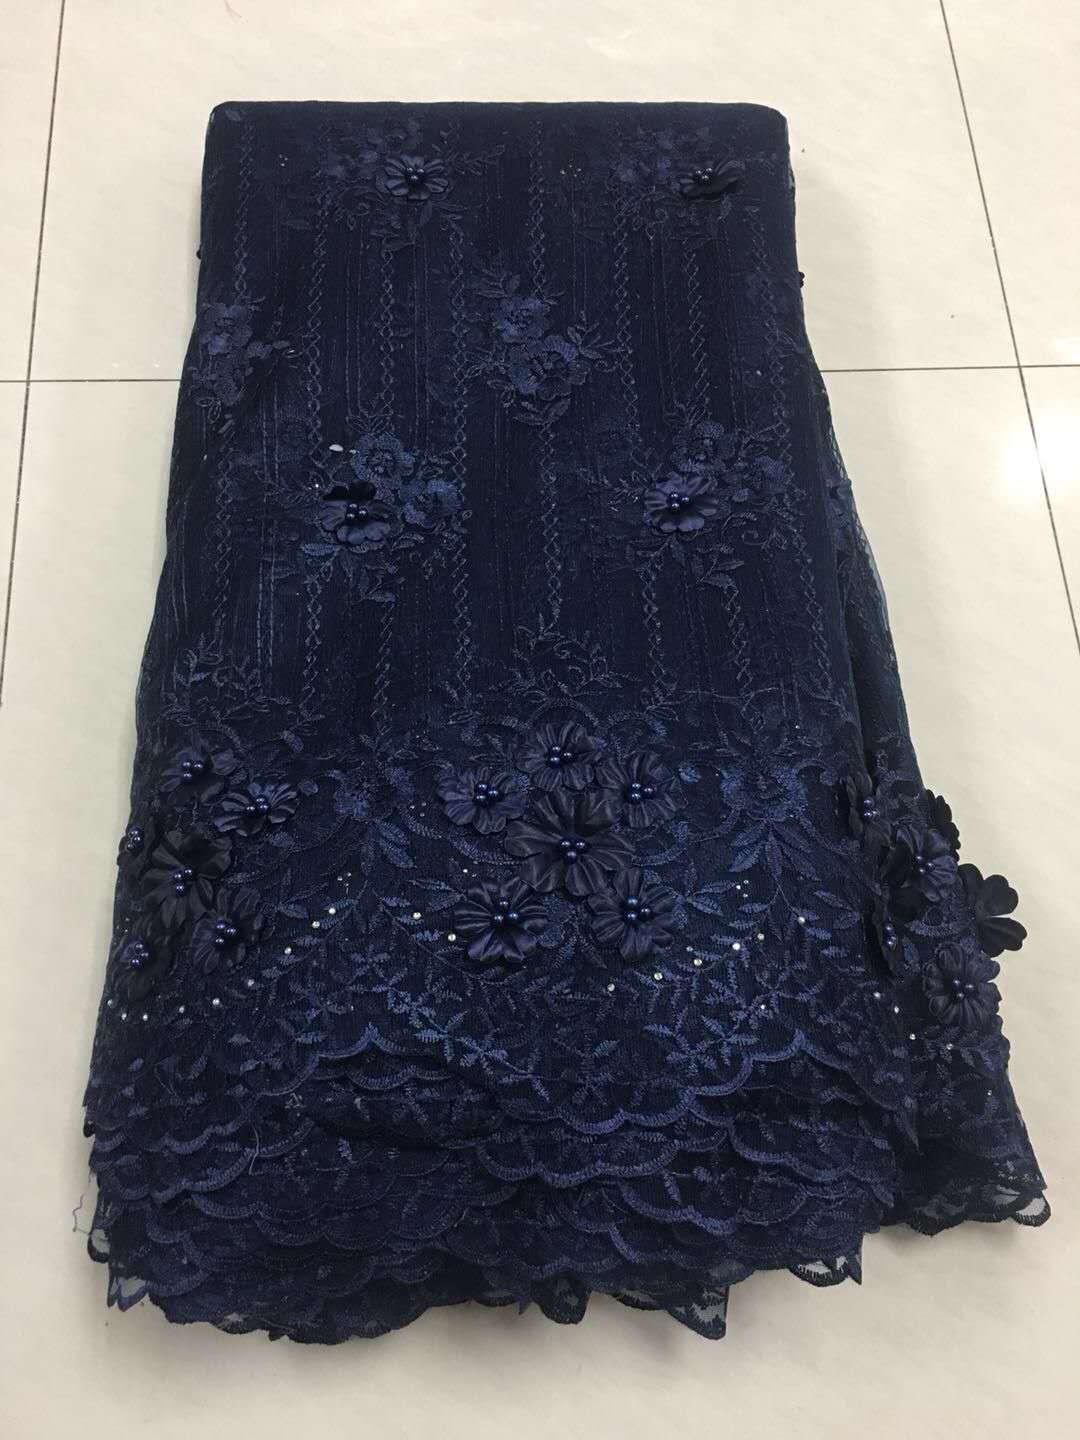 2019 Best Sail African Lace Fabric Swiss Voile Lace High Quality Emboridery French Net 3D Flowers